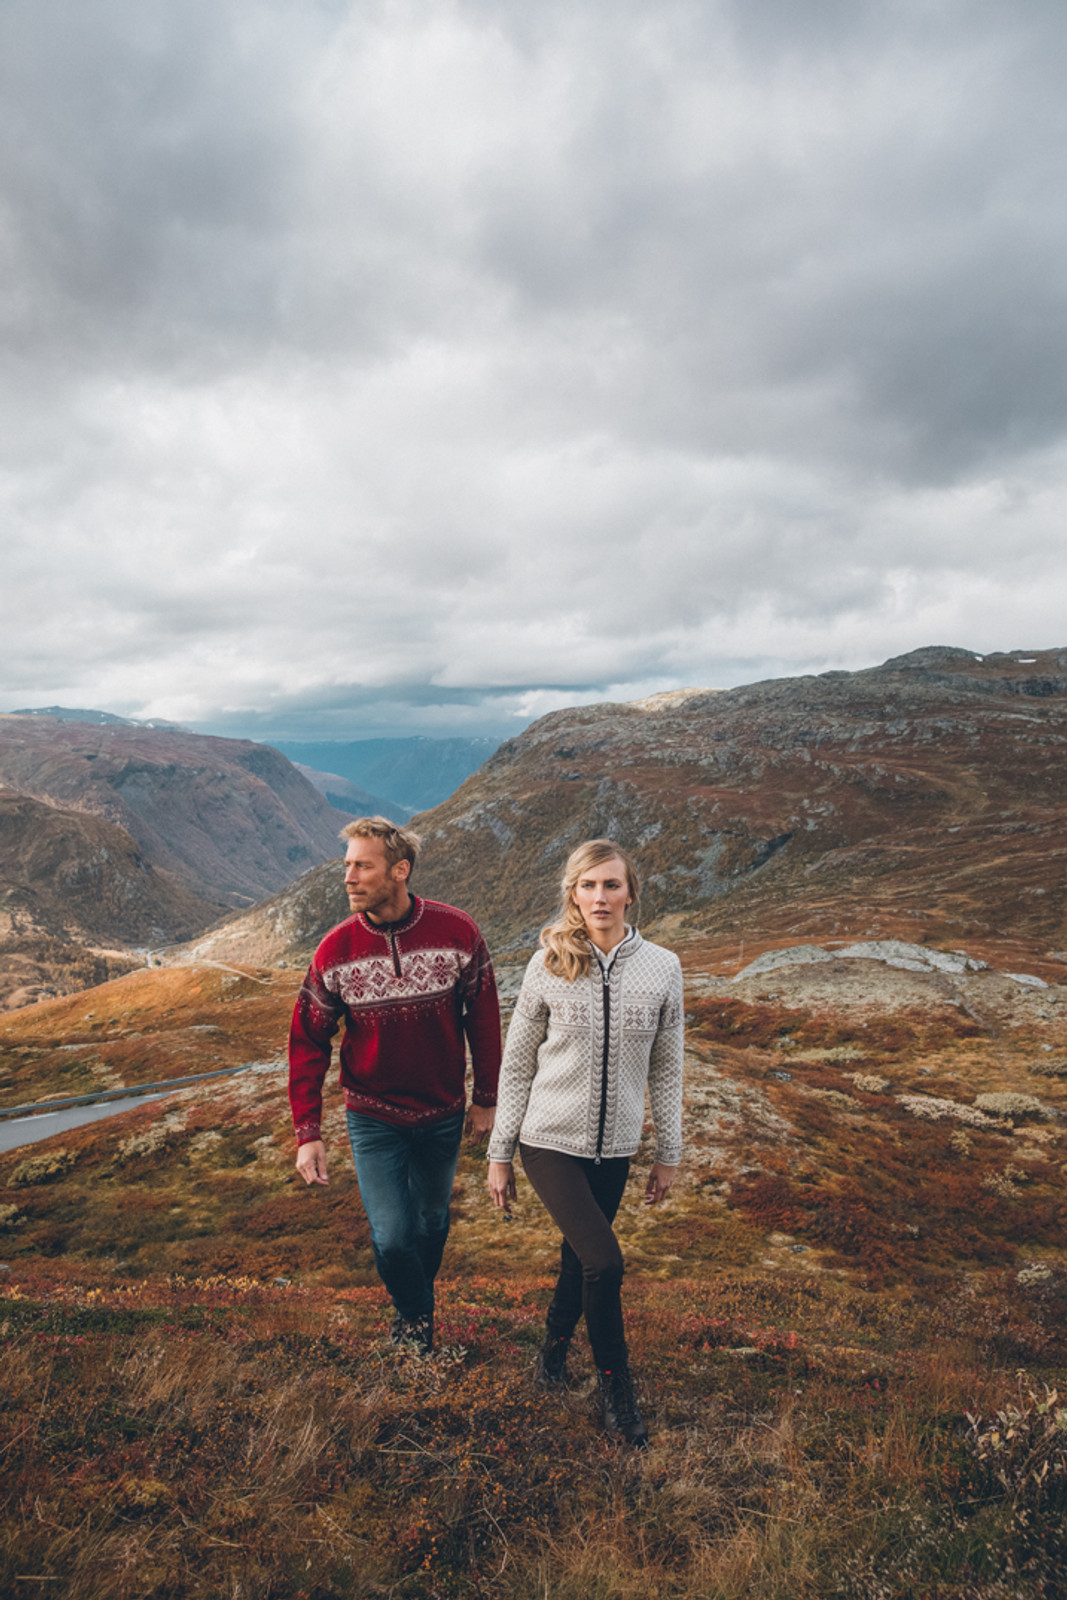 Woman and man walking through field wearing the Dale of Norway Sunniva ladies cardigan in Off White/Warm Taupe, 83161-D, and the Blyfjell mens sweater in Red/Rose/Off-White/Mountainstone/Smoke, 91291-B, respectively